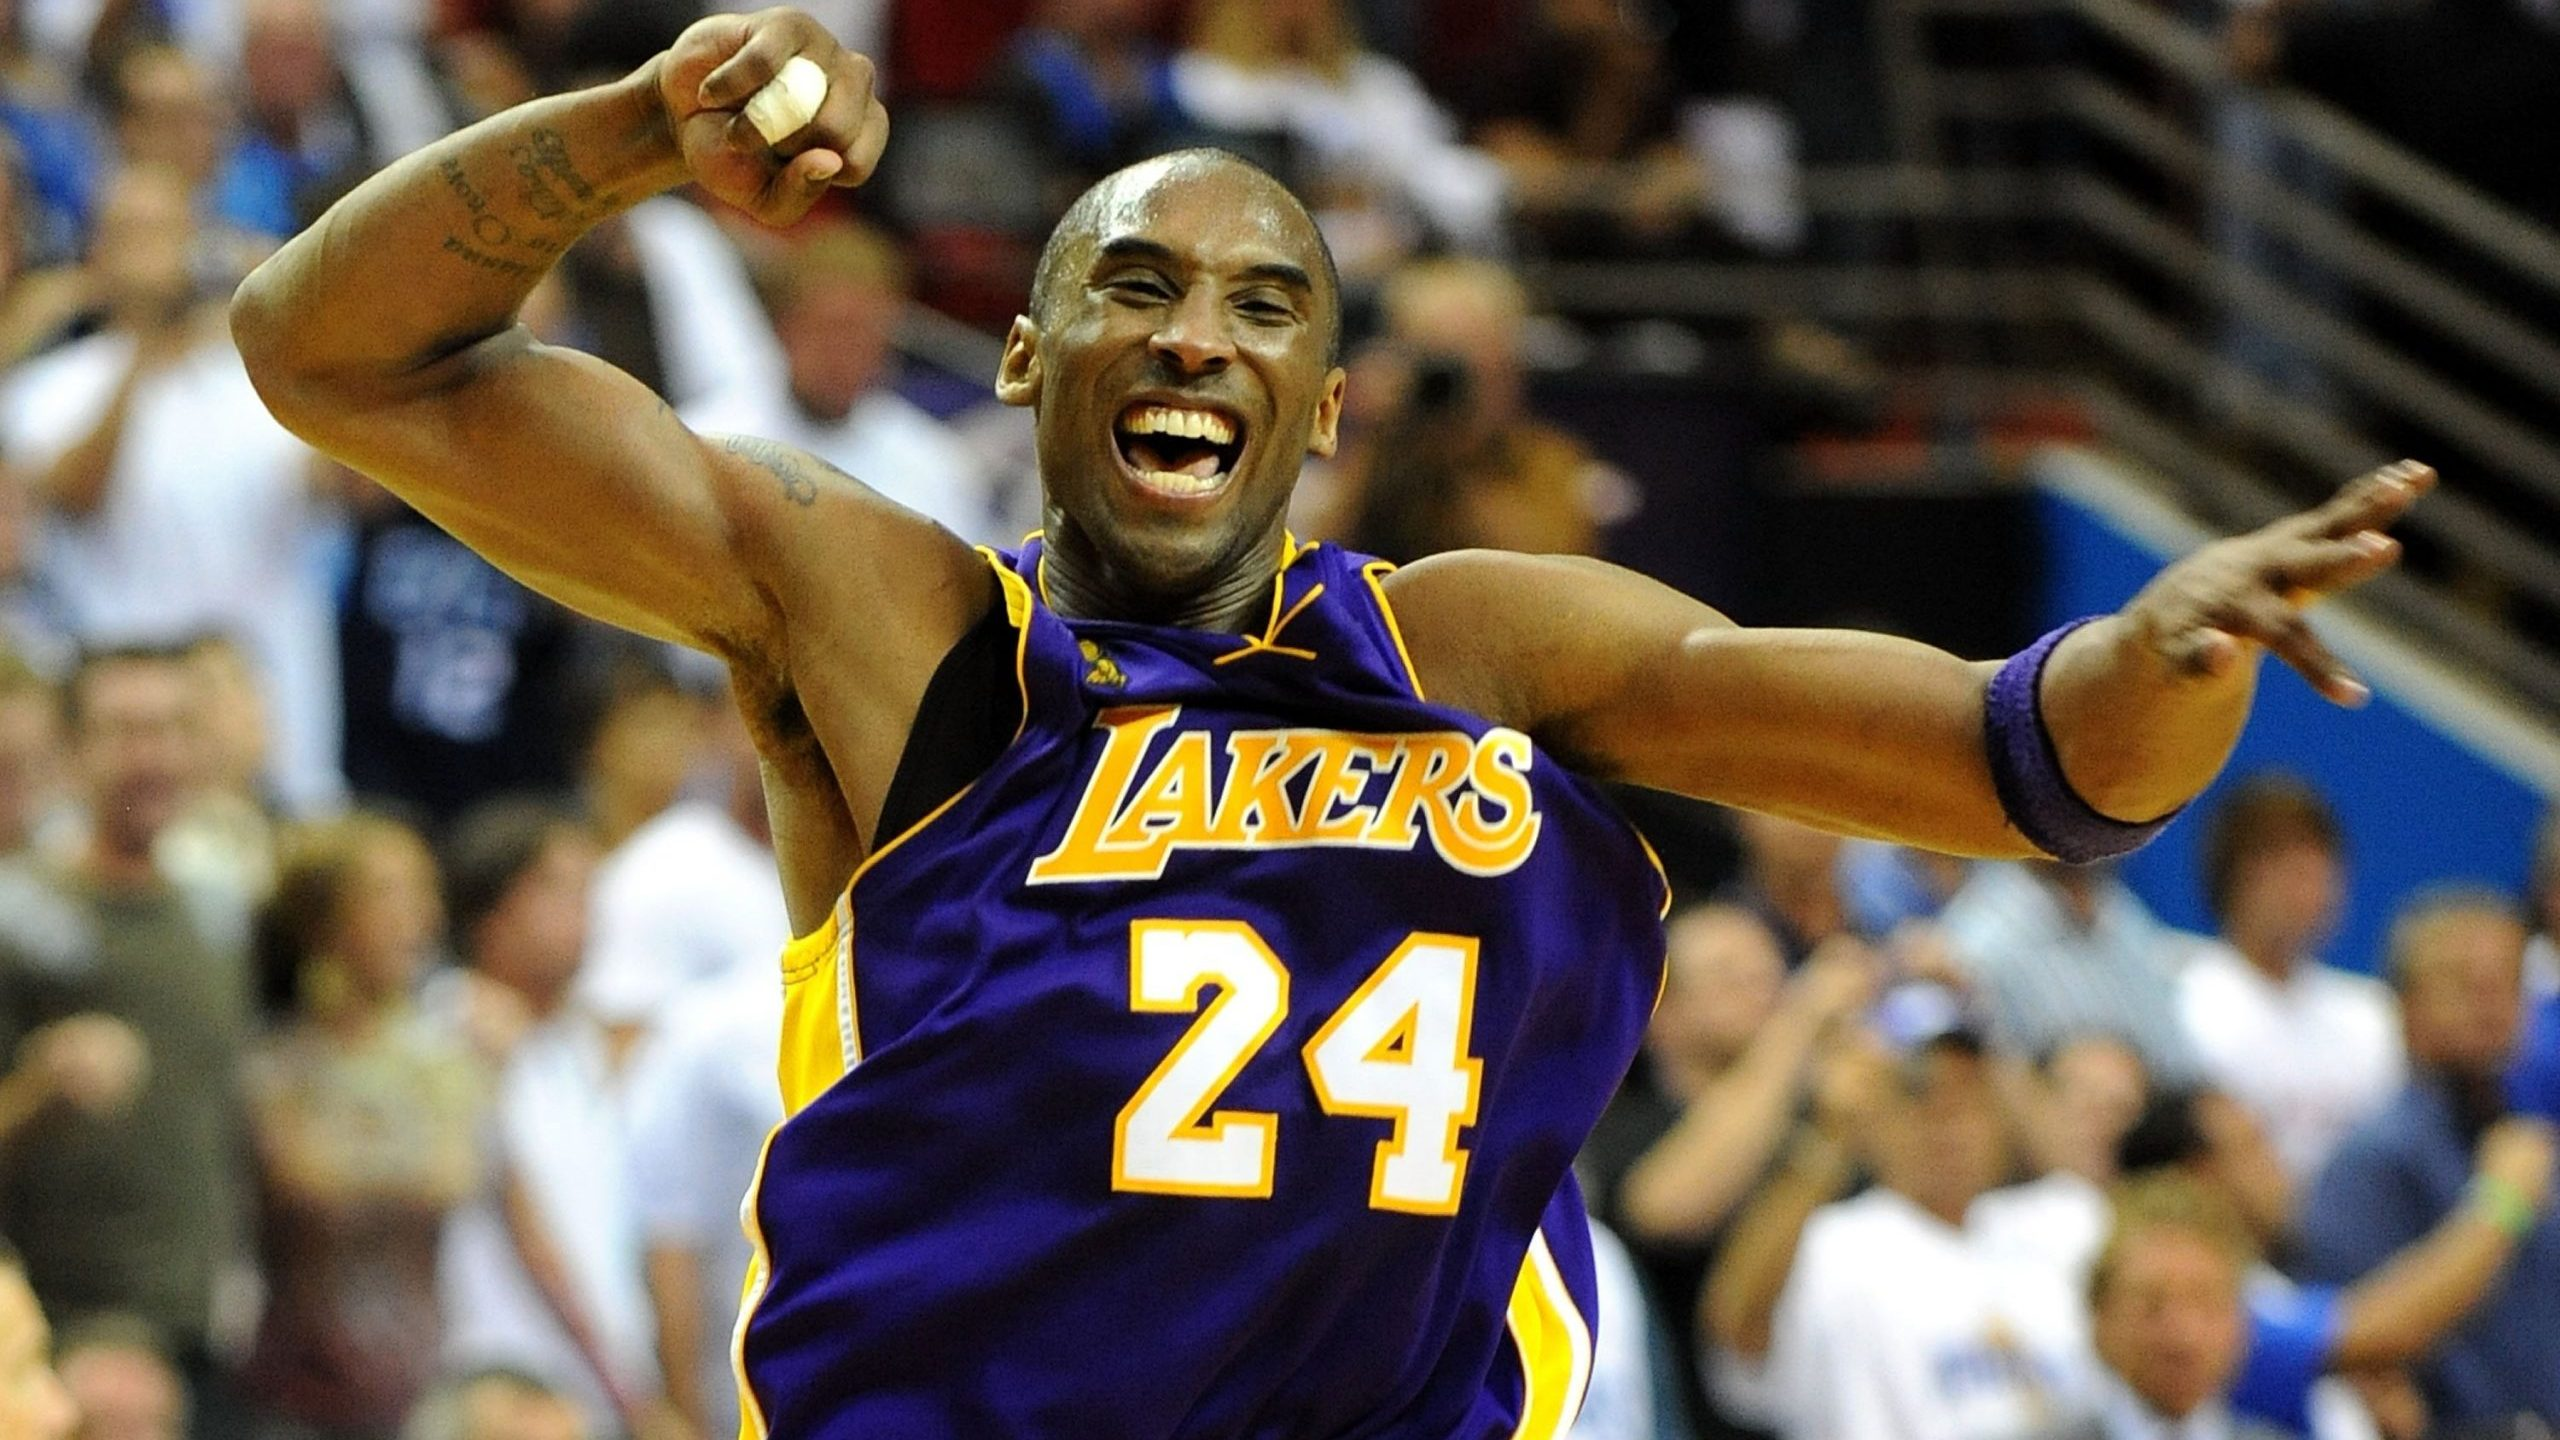 Kobe Bryant of the Los Angeles Lakers celebrates after defeating the Orlando Magic 99-86 in Game 5 of the 2009 NBA Finals in Orlando, Florida. (Credit: Ronald Martinez / Getty Images)